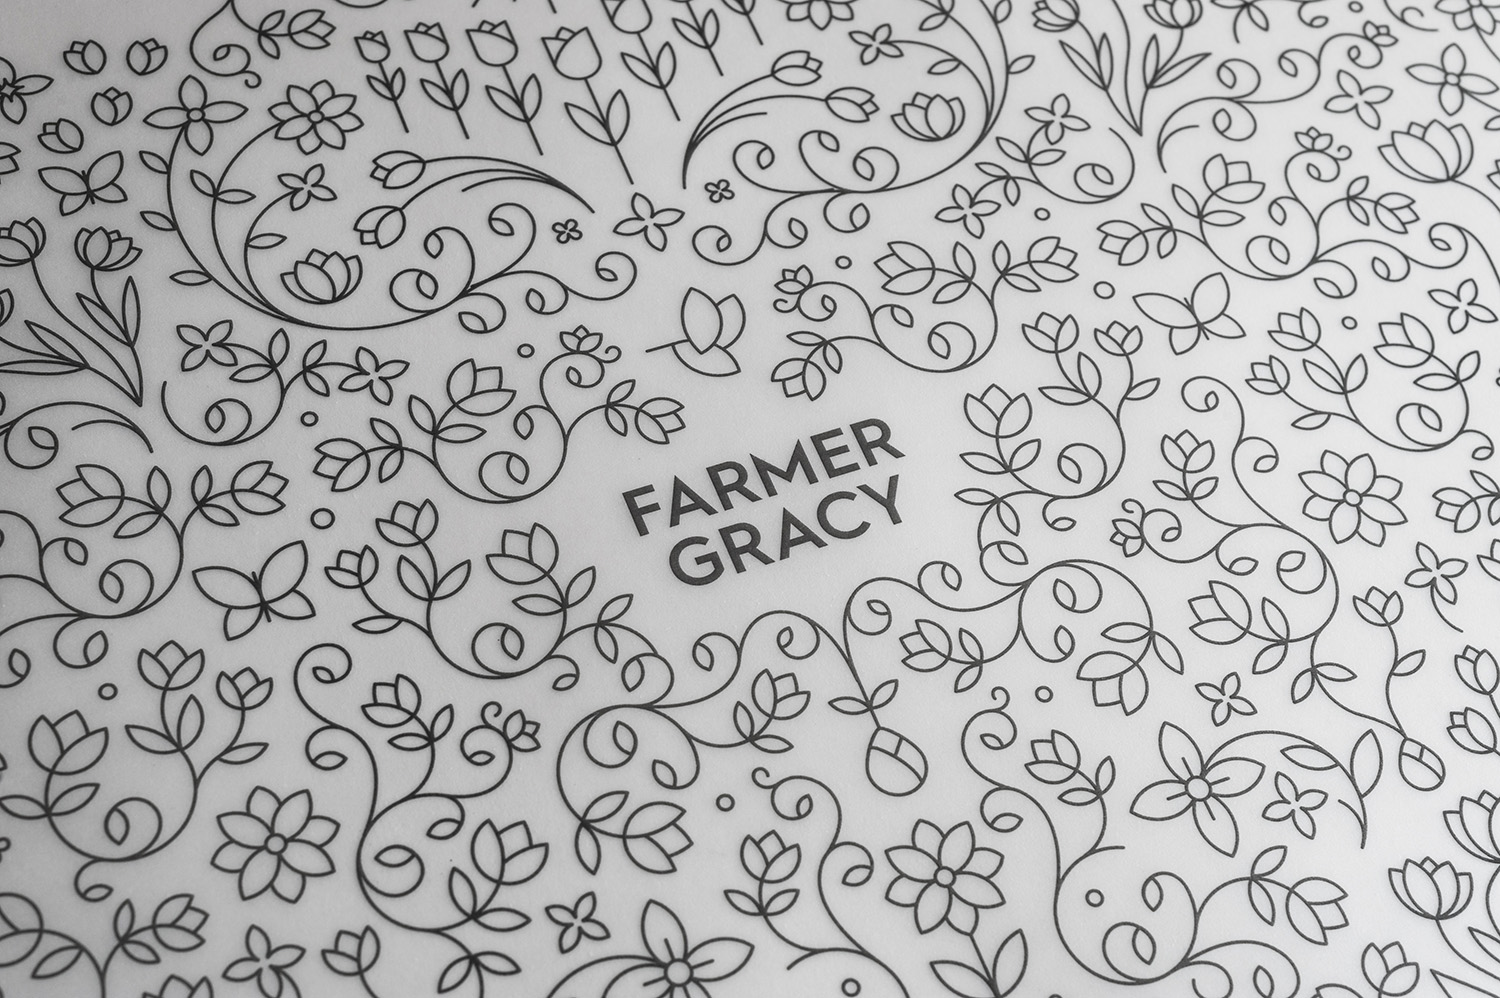 Farmer Gracy pattern design